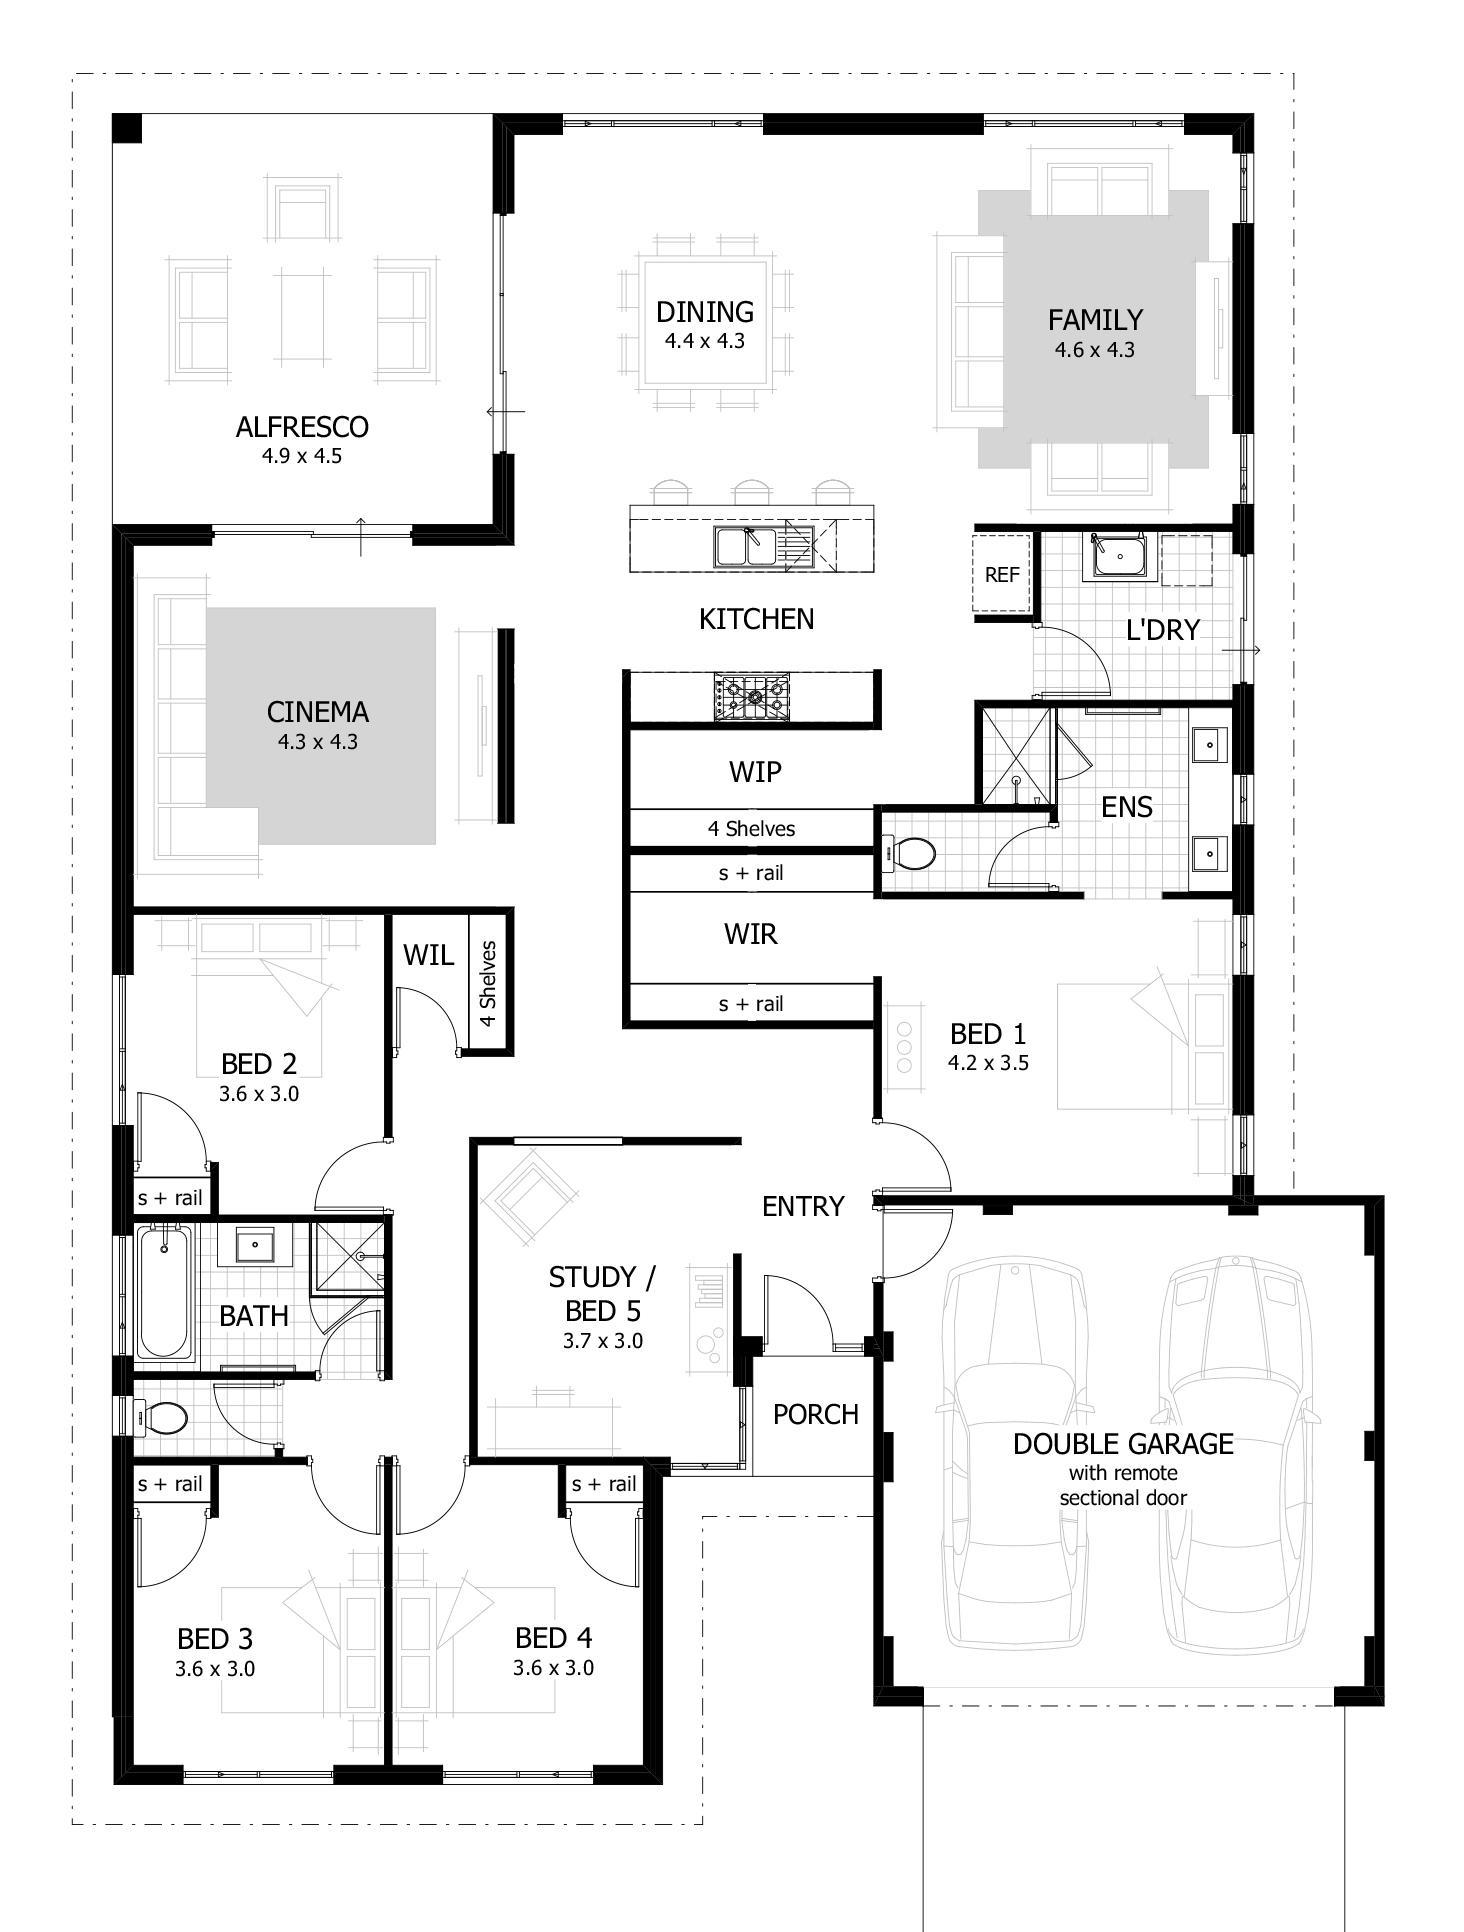 Drawing House Floor Plans: Drawing House Plans For Android